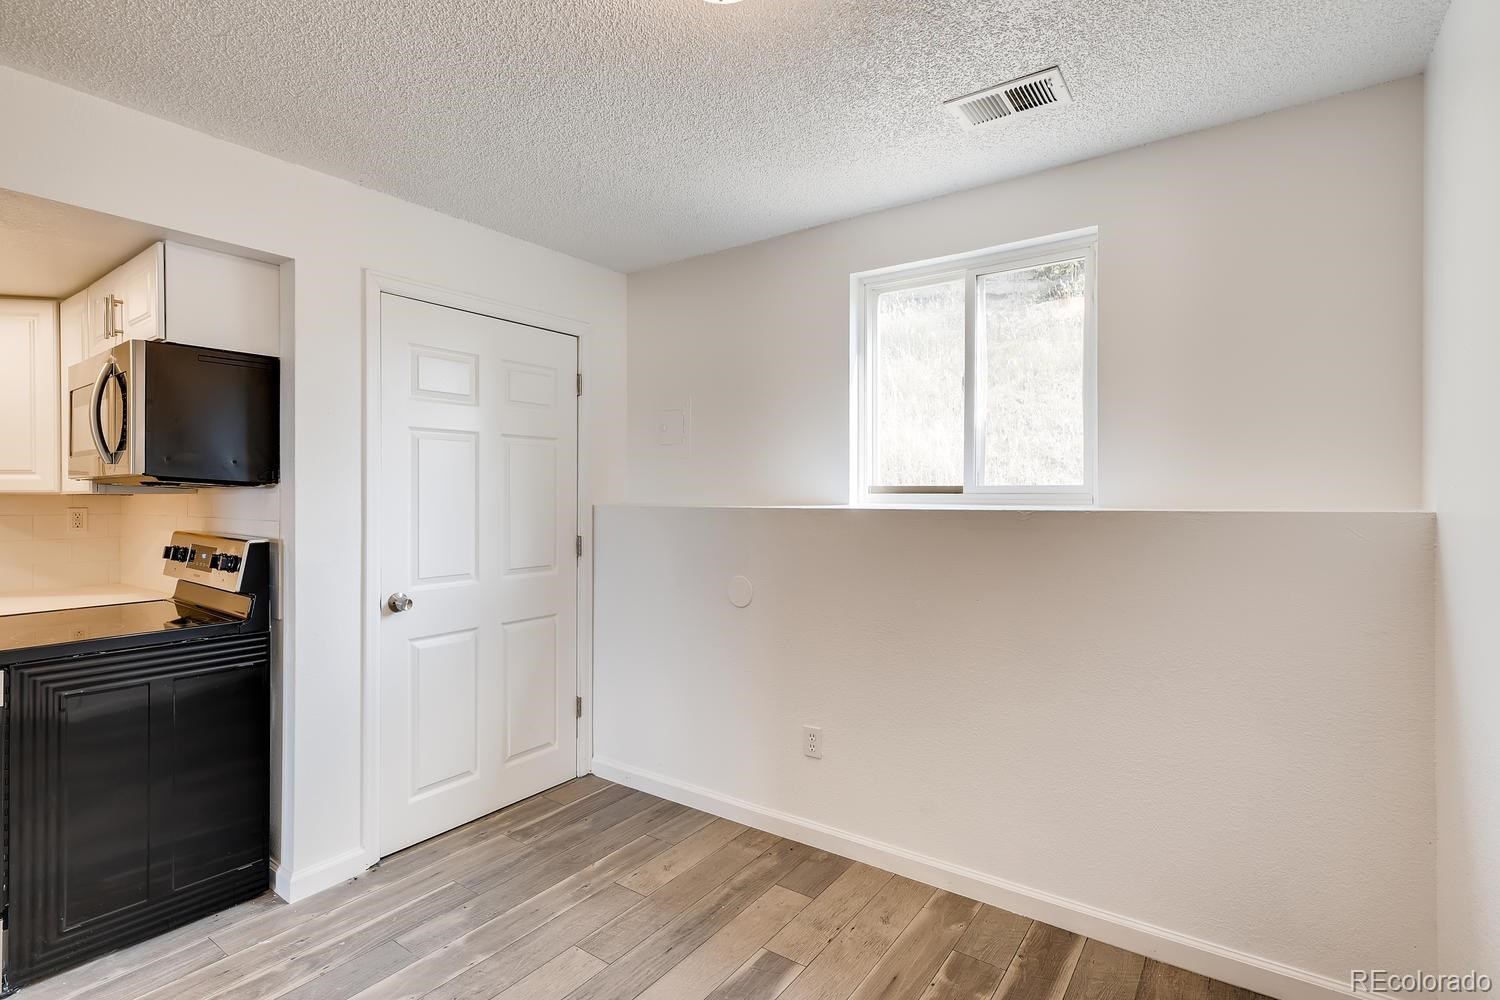 MLS# 3378738 - 6 - 4670 W Nevada Place ##103, Denver, CO 80219